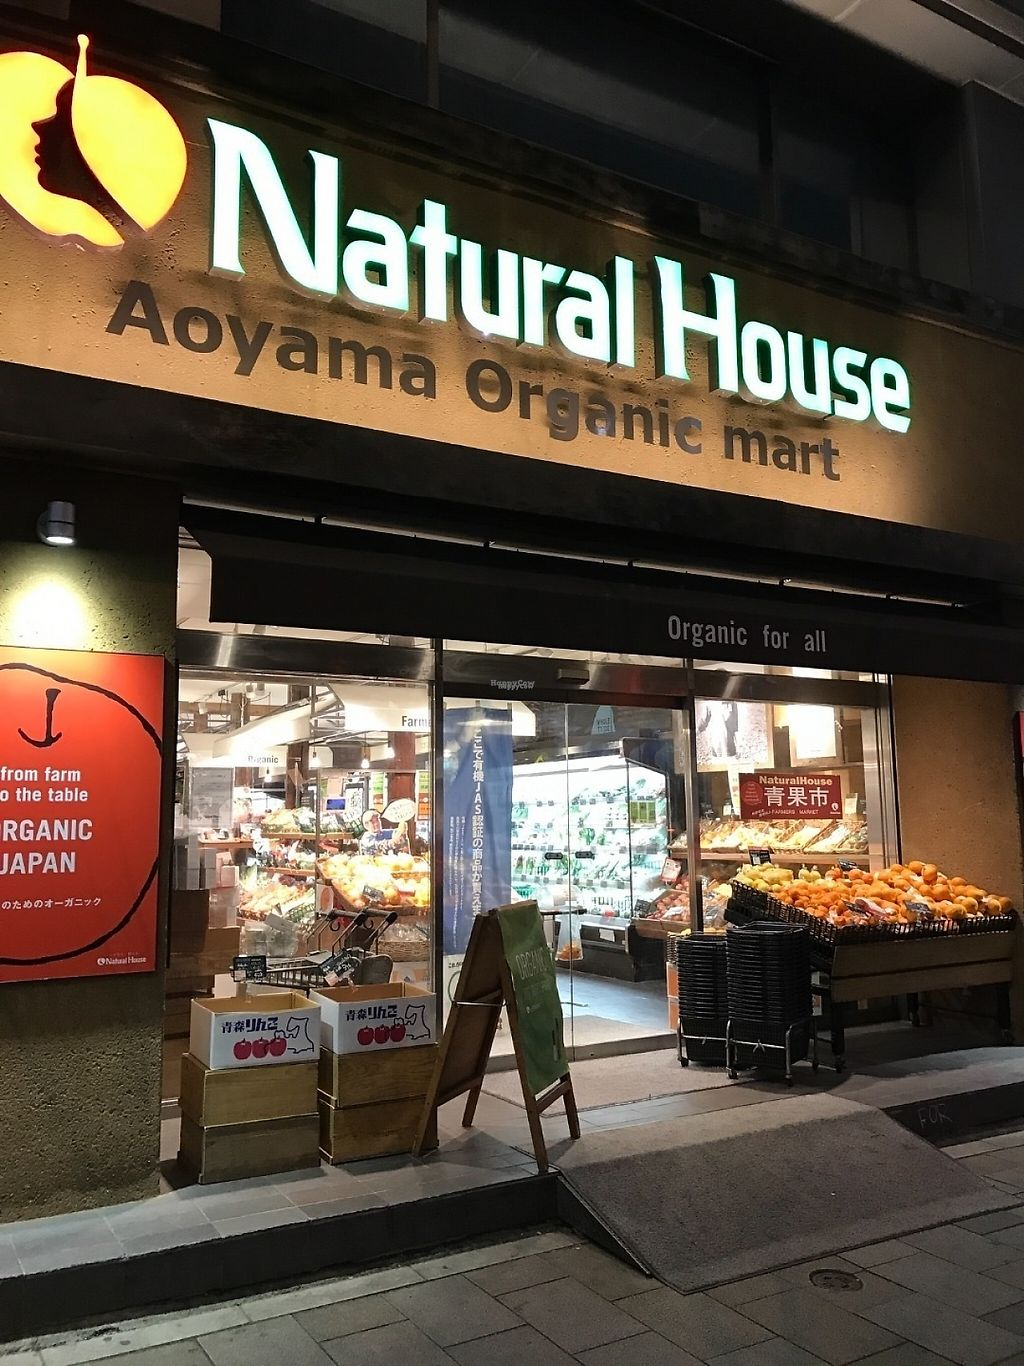 "Photo of Natural House  by <a href=""/members/profile/Kevtool"">Kevtool</a> <br/>Outside shop  <br/> March 12, 2017  - <a href='/contact/abuse/image/8271/235419'>Report</a>"